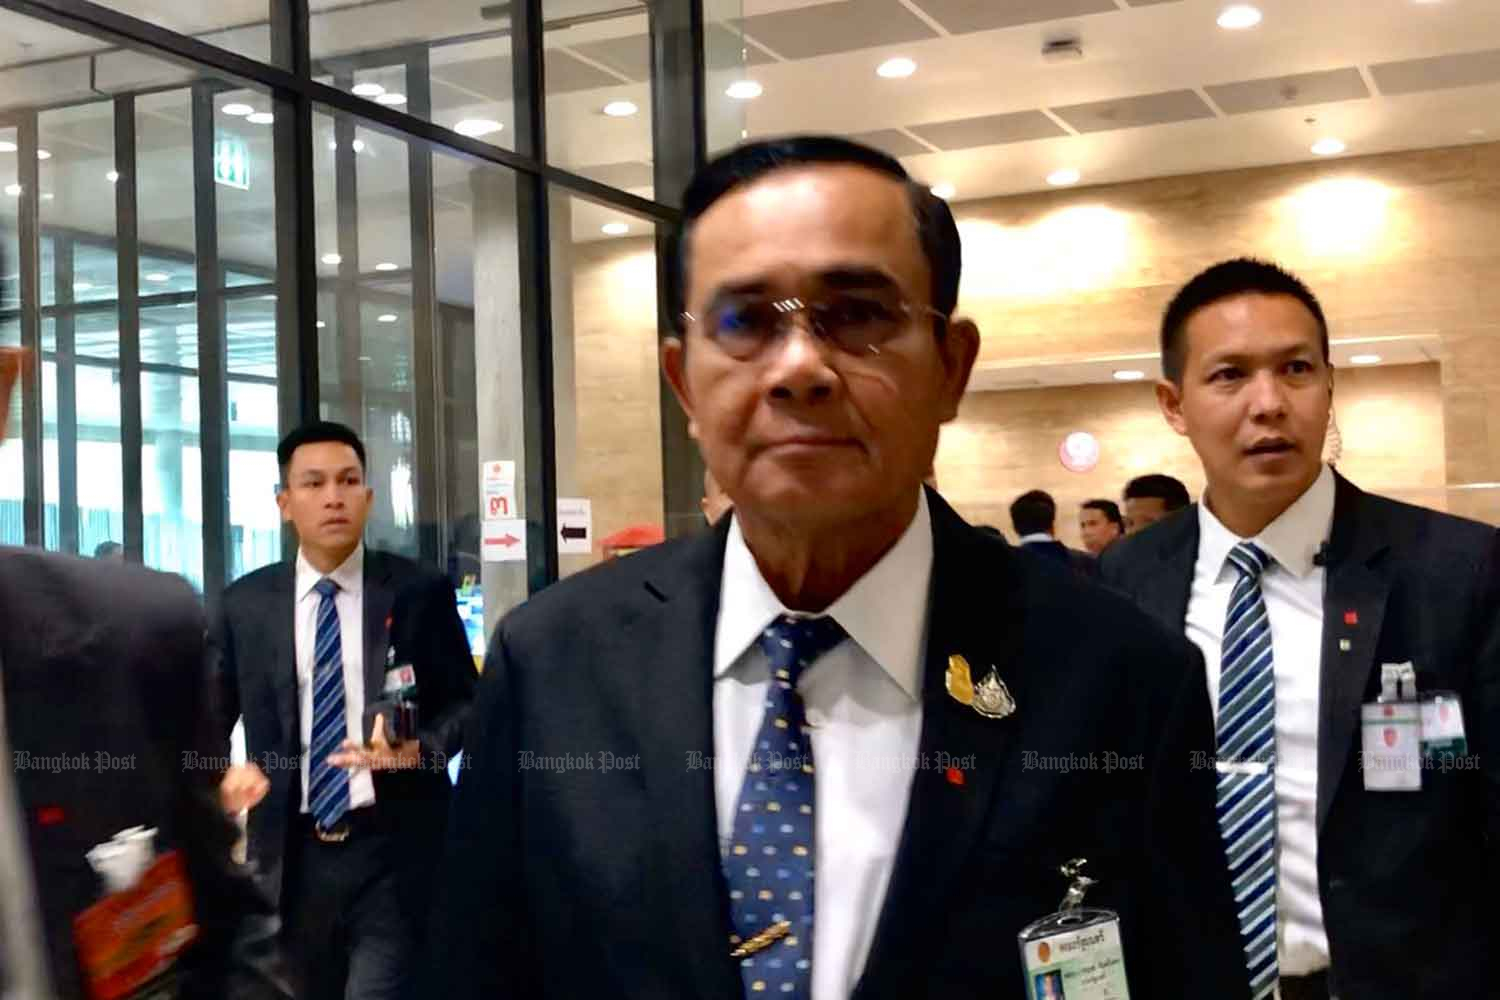 Prime Minister Prayut Chan-o-cha arrives at the parliament in Bangkok on Thursday. (Photo by Wassana Nanuam)